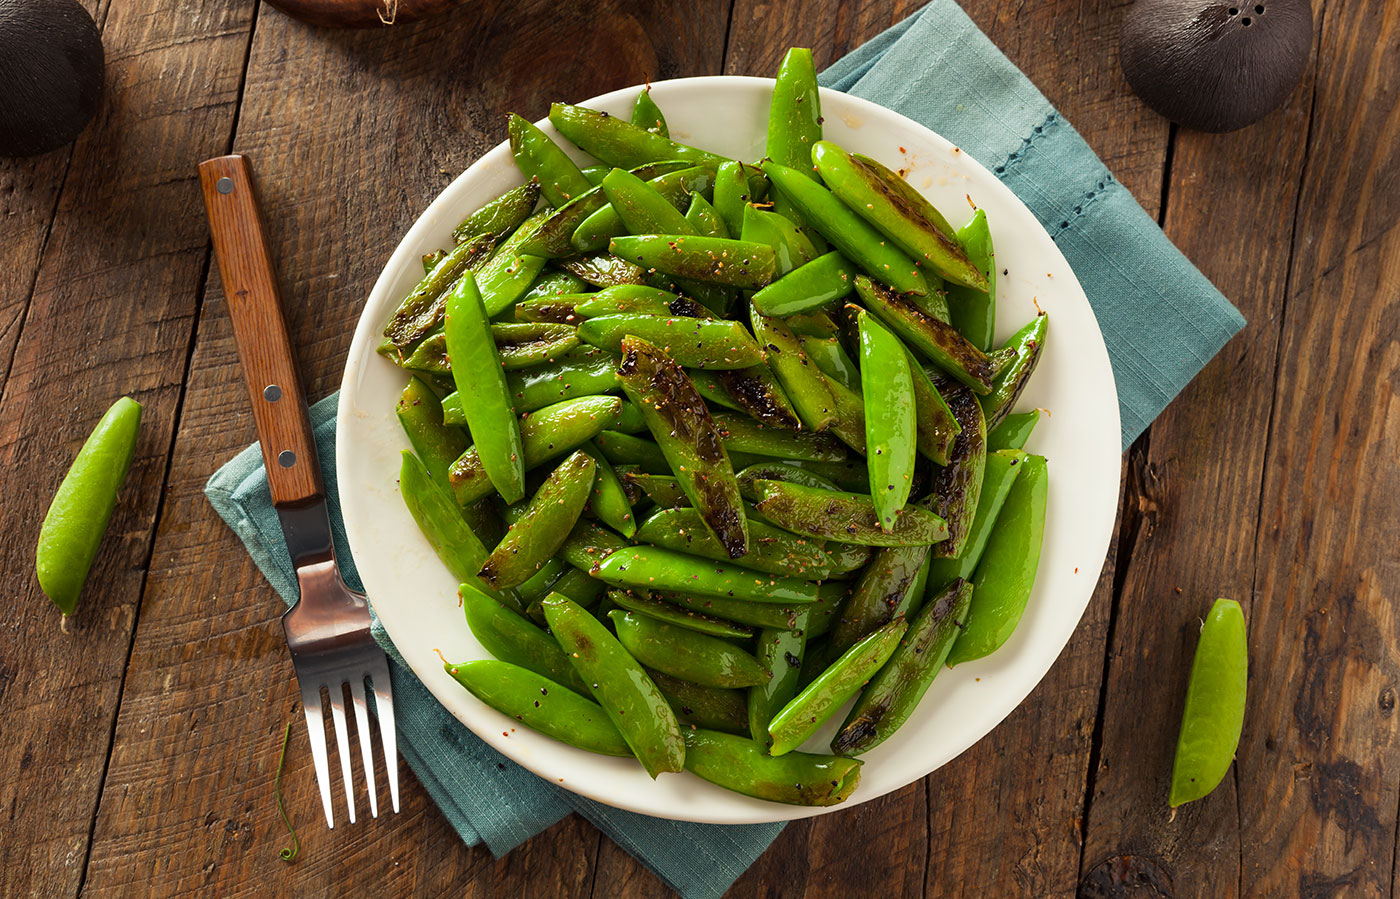 Homemade Sugar Snap Peas